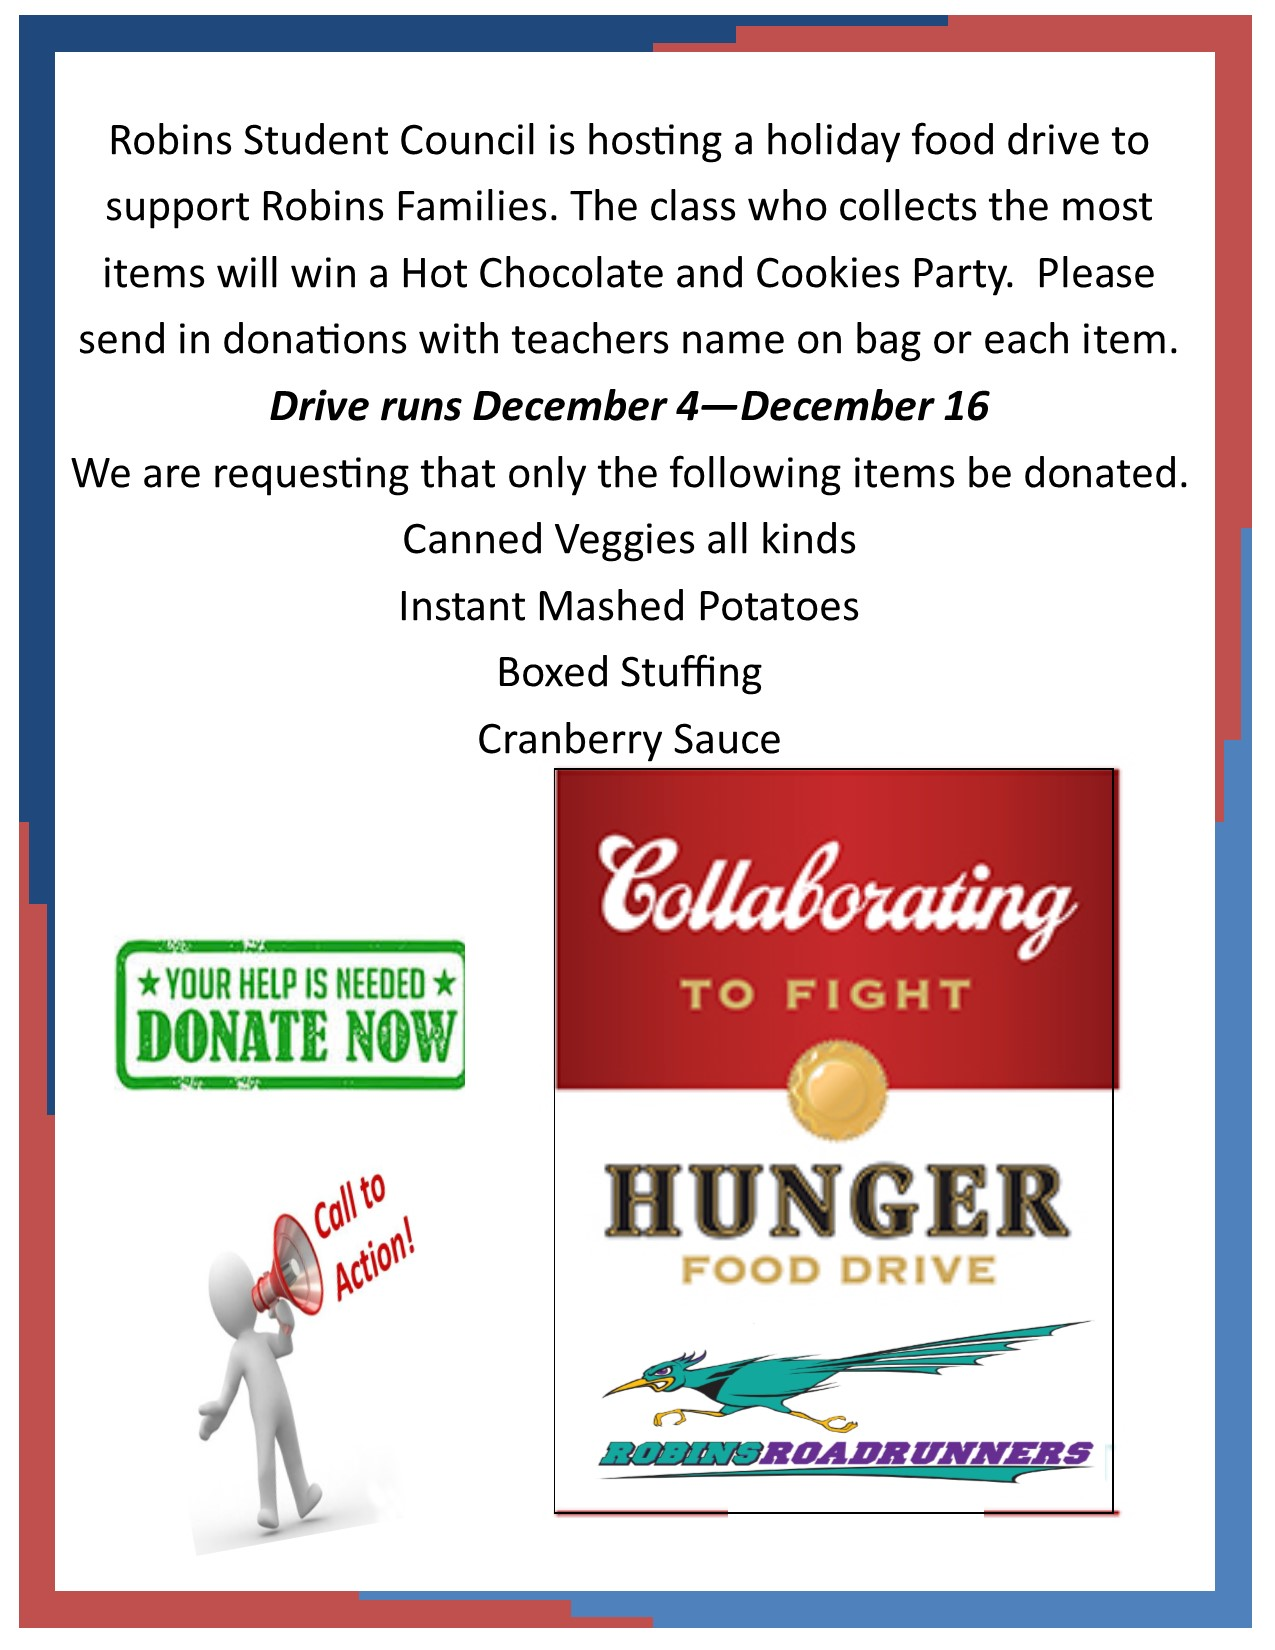 Robins Student Council is hosting a holiday food drive to support Robins Families. The class who collects the most items will win a Hot Chocolate and Cookies Party.  Please send in donations with teachers name on bag or each item.  Drive runs December 4—December 16 We are requesting that only the following items be donated. Canned Veggies all kinds Instant Mashed Potatoes Boxed Stuffing Cranberry Sauce